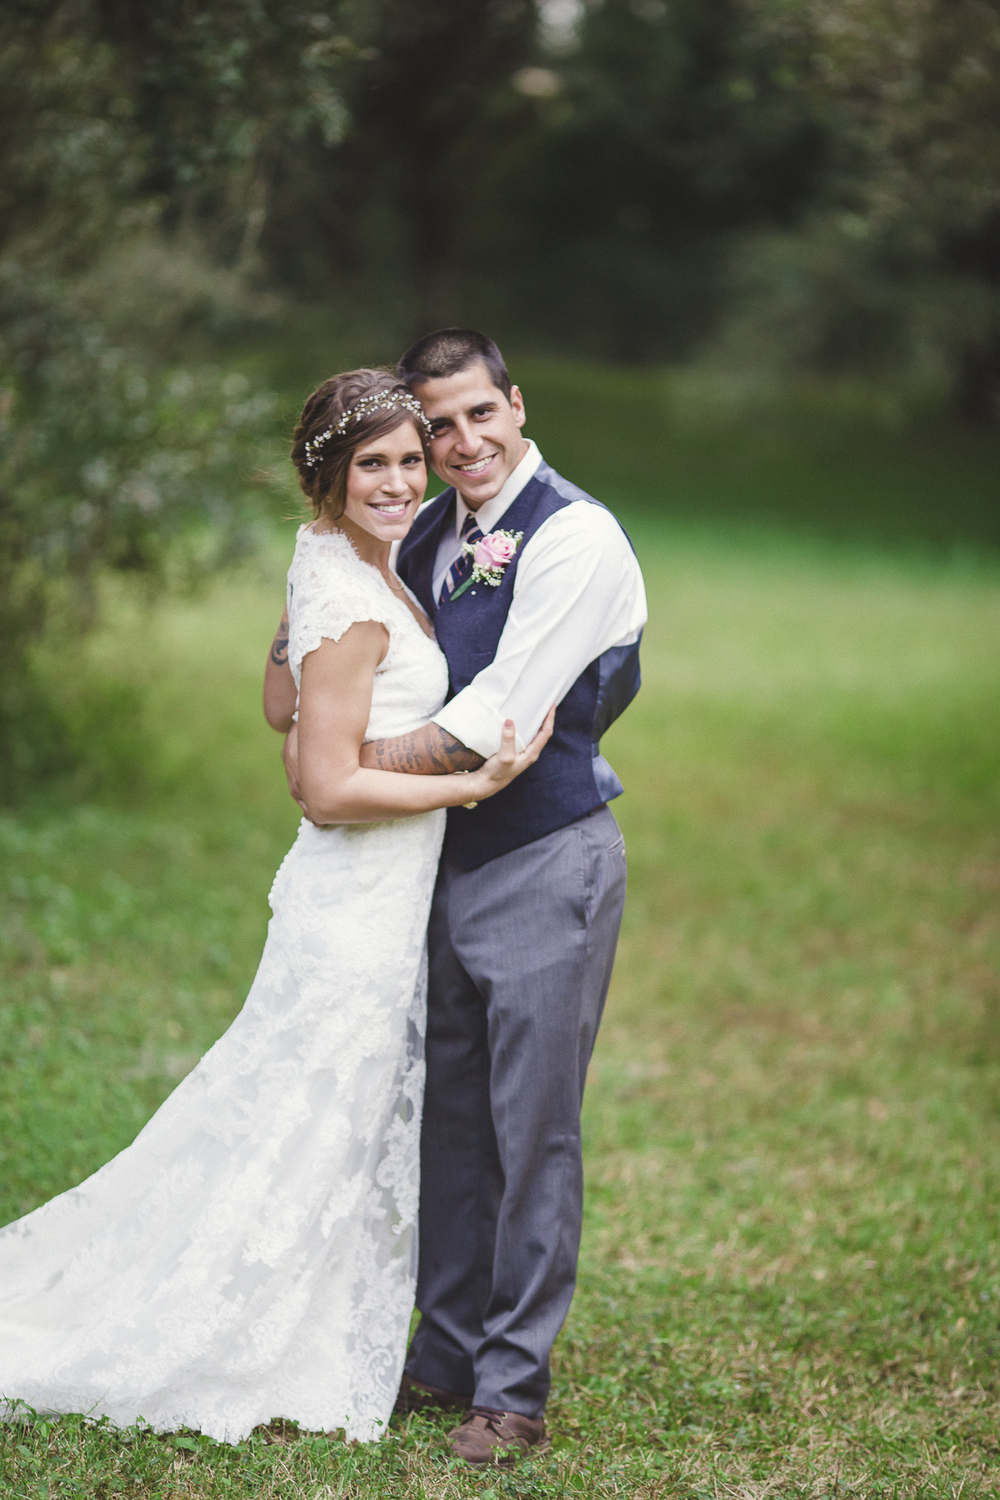 Laurel Gardens Wedding by Christina Maldonado Photography (100 of 143).JPG